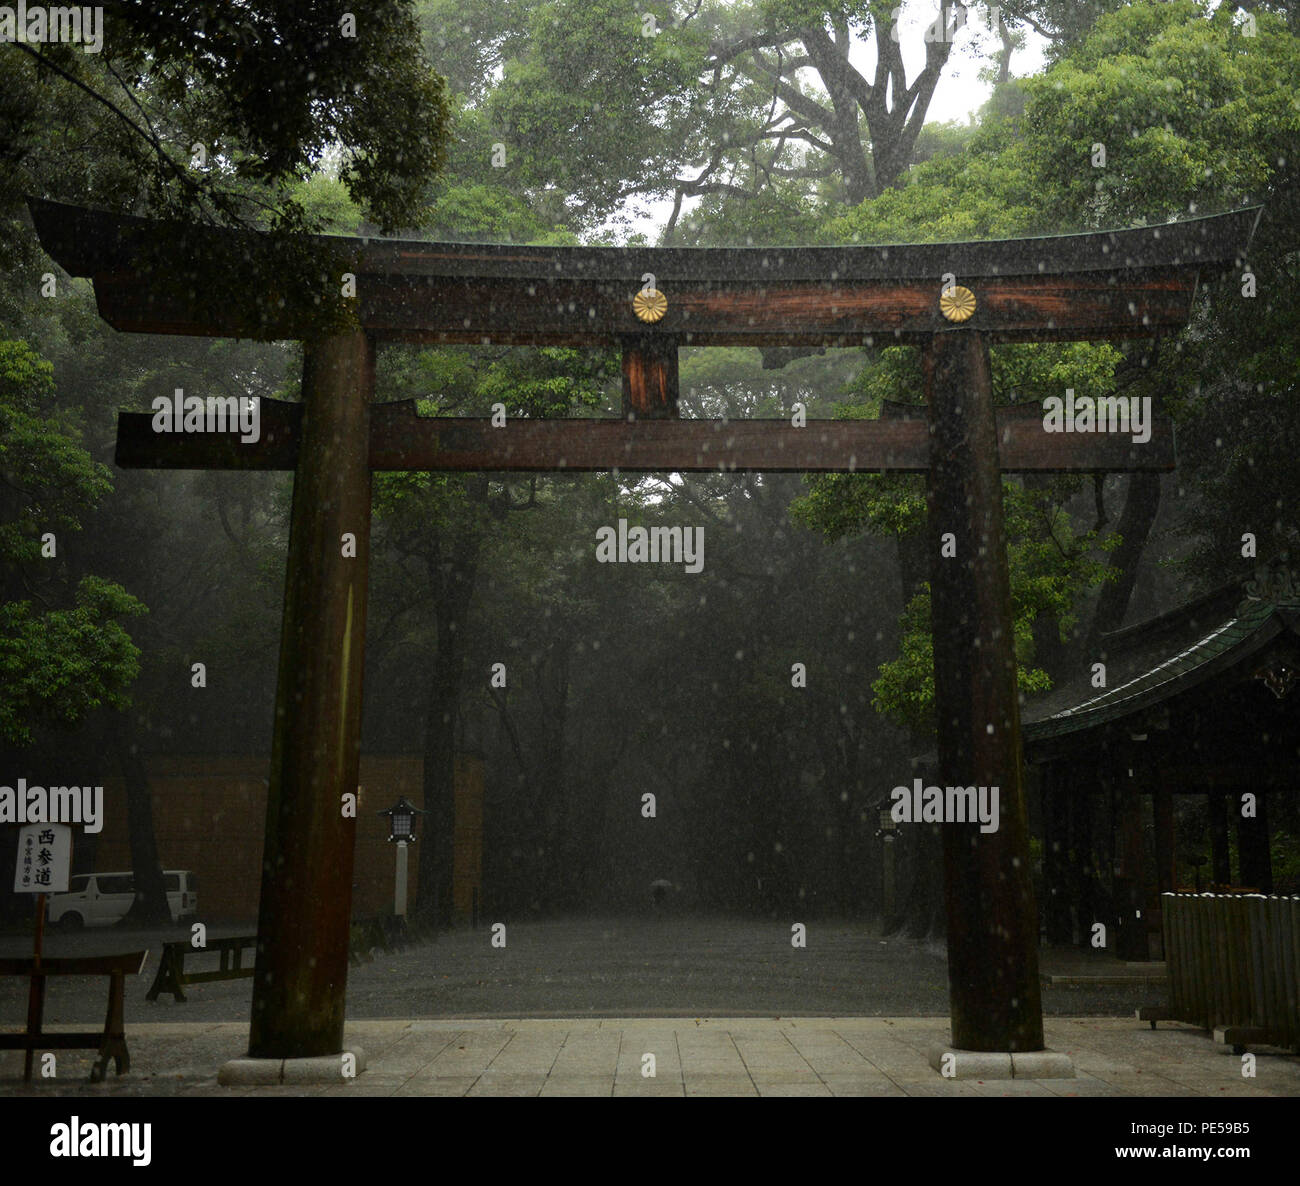 A torii gate marks the transition from the mundane to the sacred outside Meiji Shrine in Tokyo, Sept. 9, 2015. The 100-year-old forest surrounding the temple  is comprised of 100,000 trees donated from all over Japan and other countries. (U.S. Air Force photo by Airman 1st Class Elizabeth Baker/Released) - Stock Image